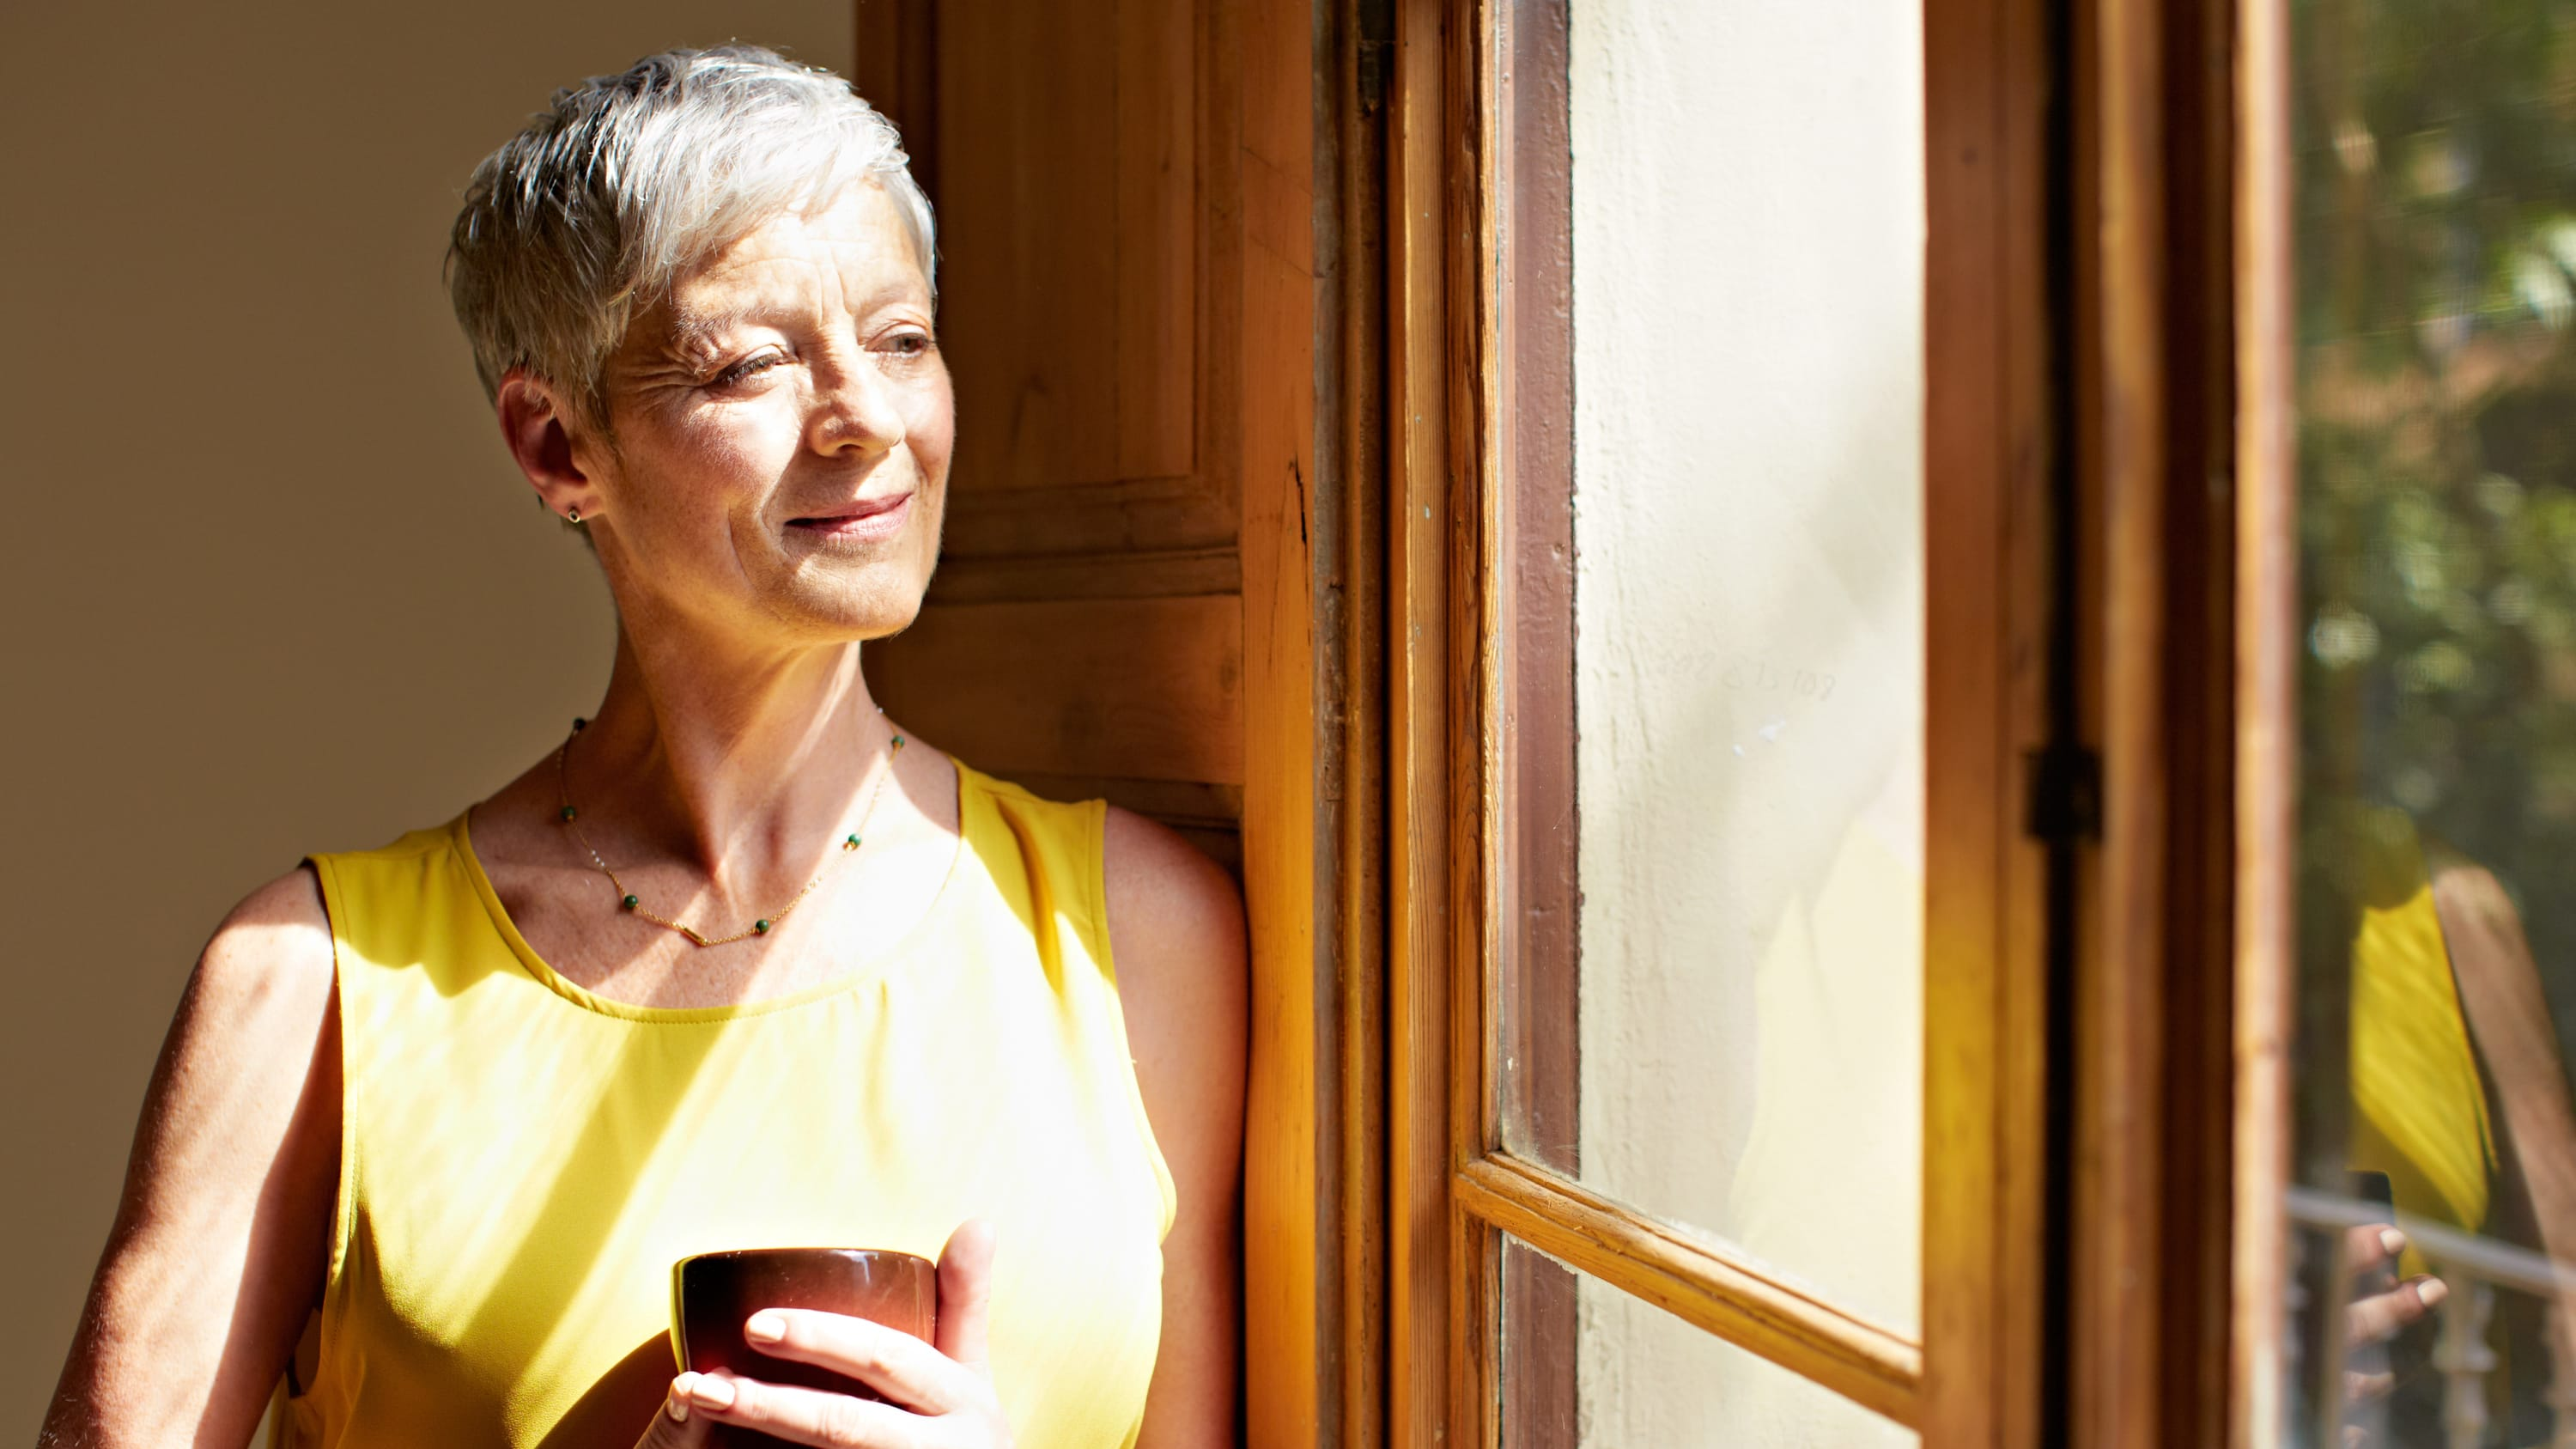 A woman looking out a window, possibly thinking about radiation therapy as a treatment for breast cancer.